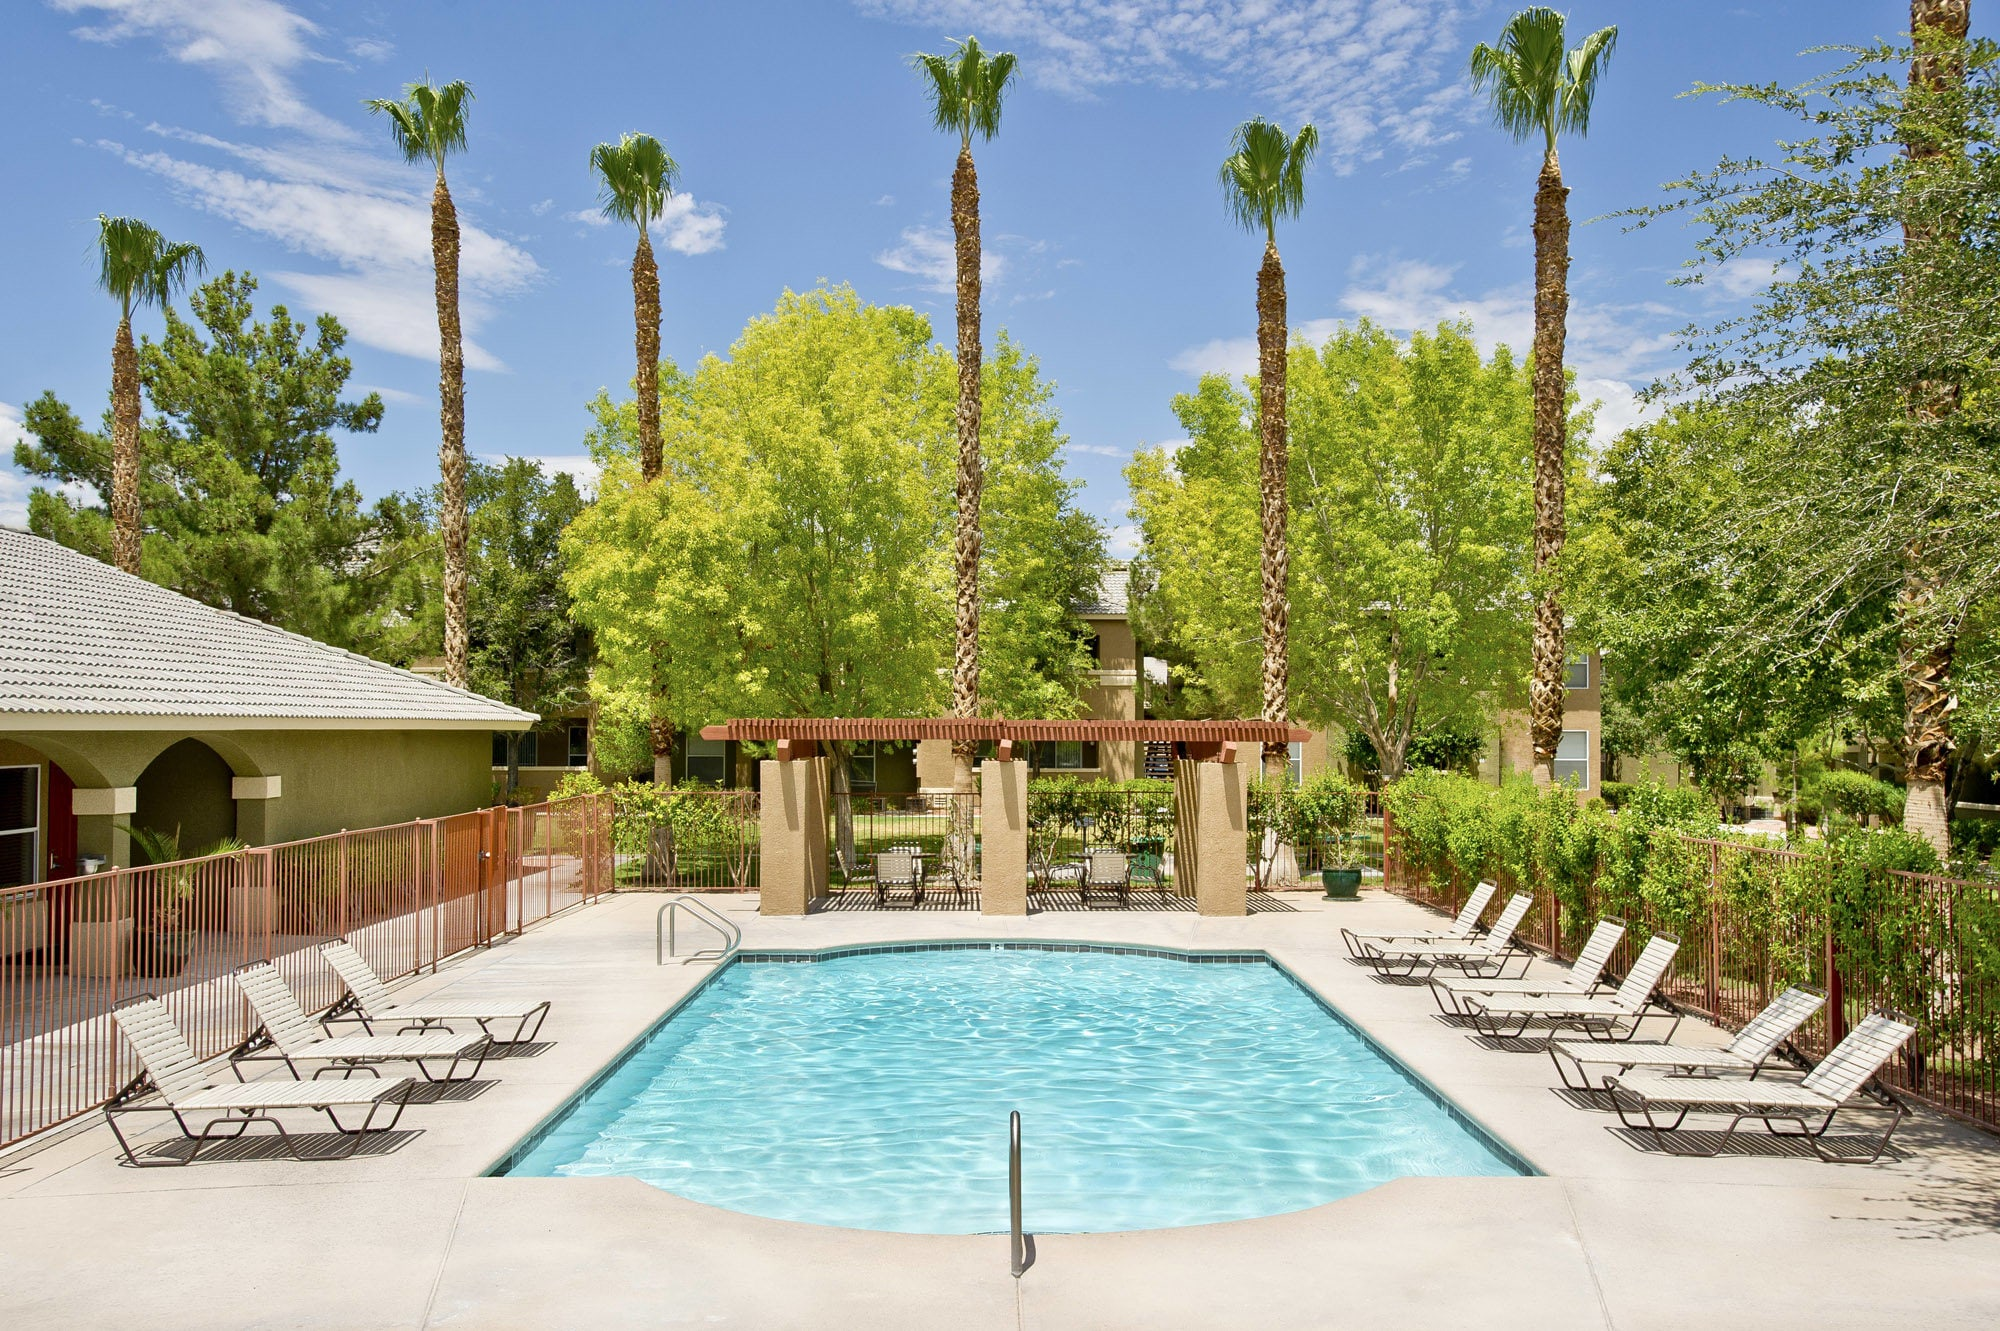 Backyard One Word Or Two 100 best apartments in las vegas, nv (with pictures)!